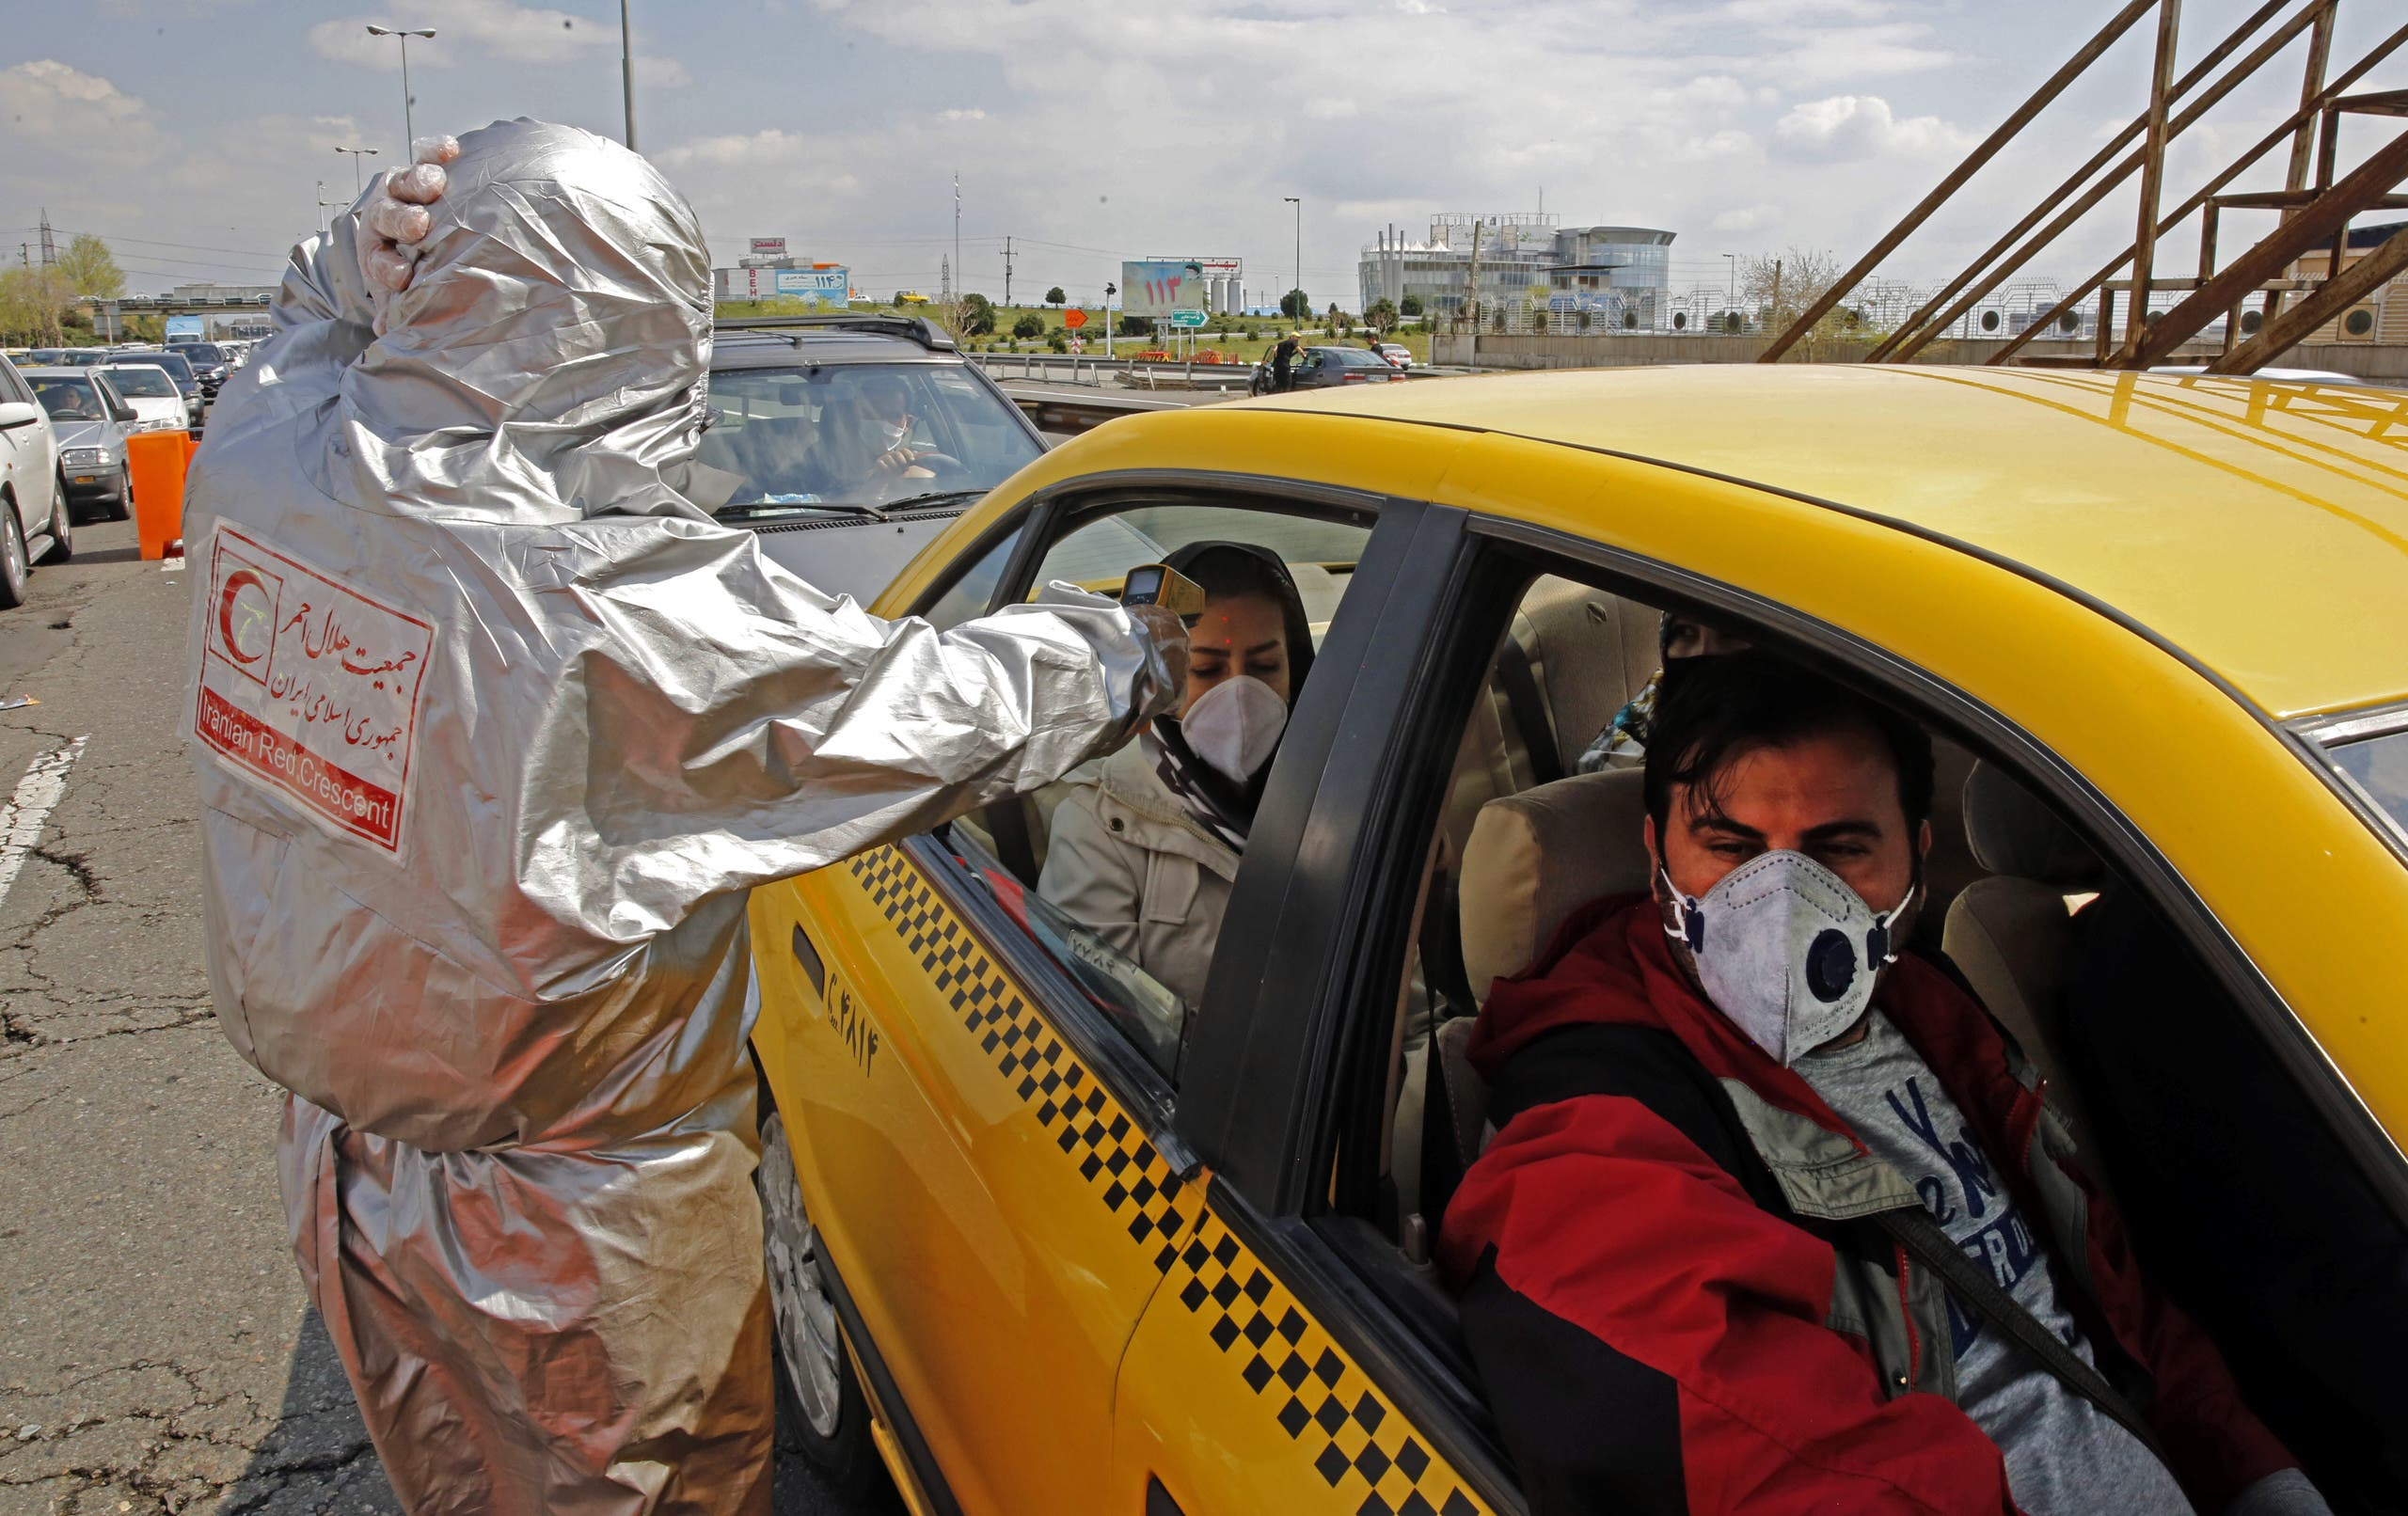 Members of the Iranian Red Crescent test people for coronavirus outside Tehran on March 26, 2020. (AFP)